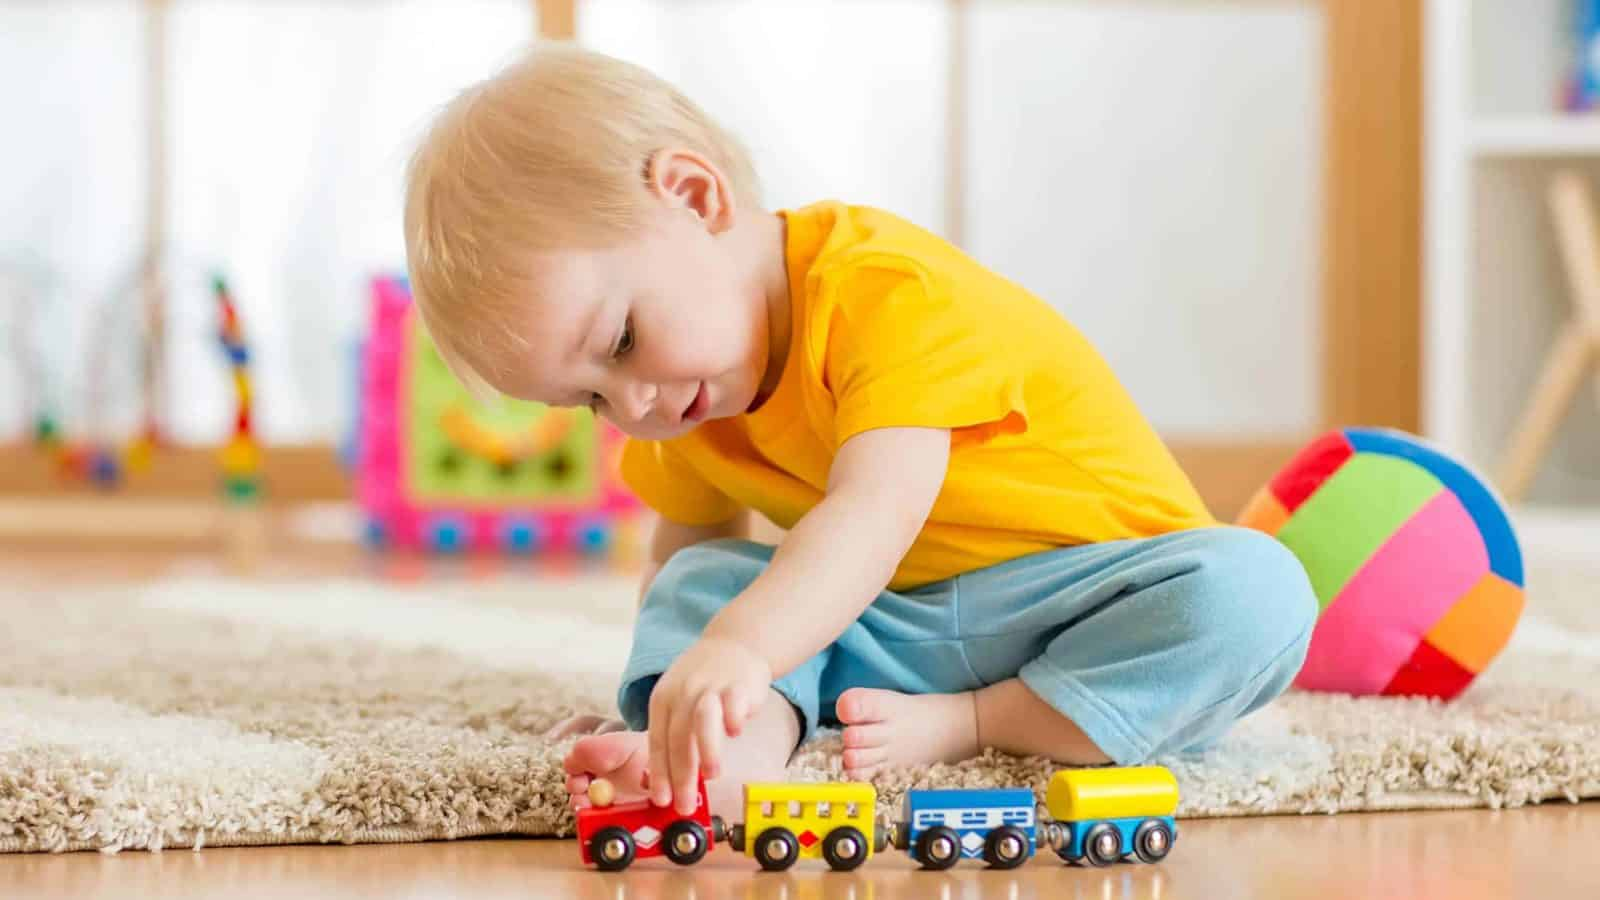 gift ideas for babies the best non-toxic gift ideas for babies